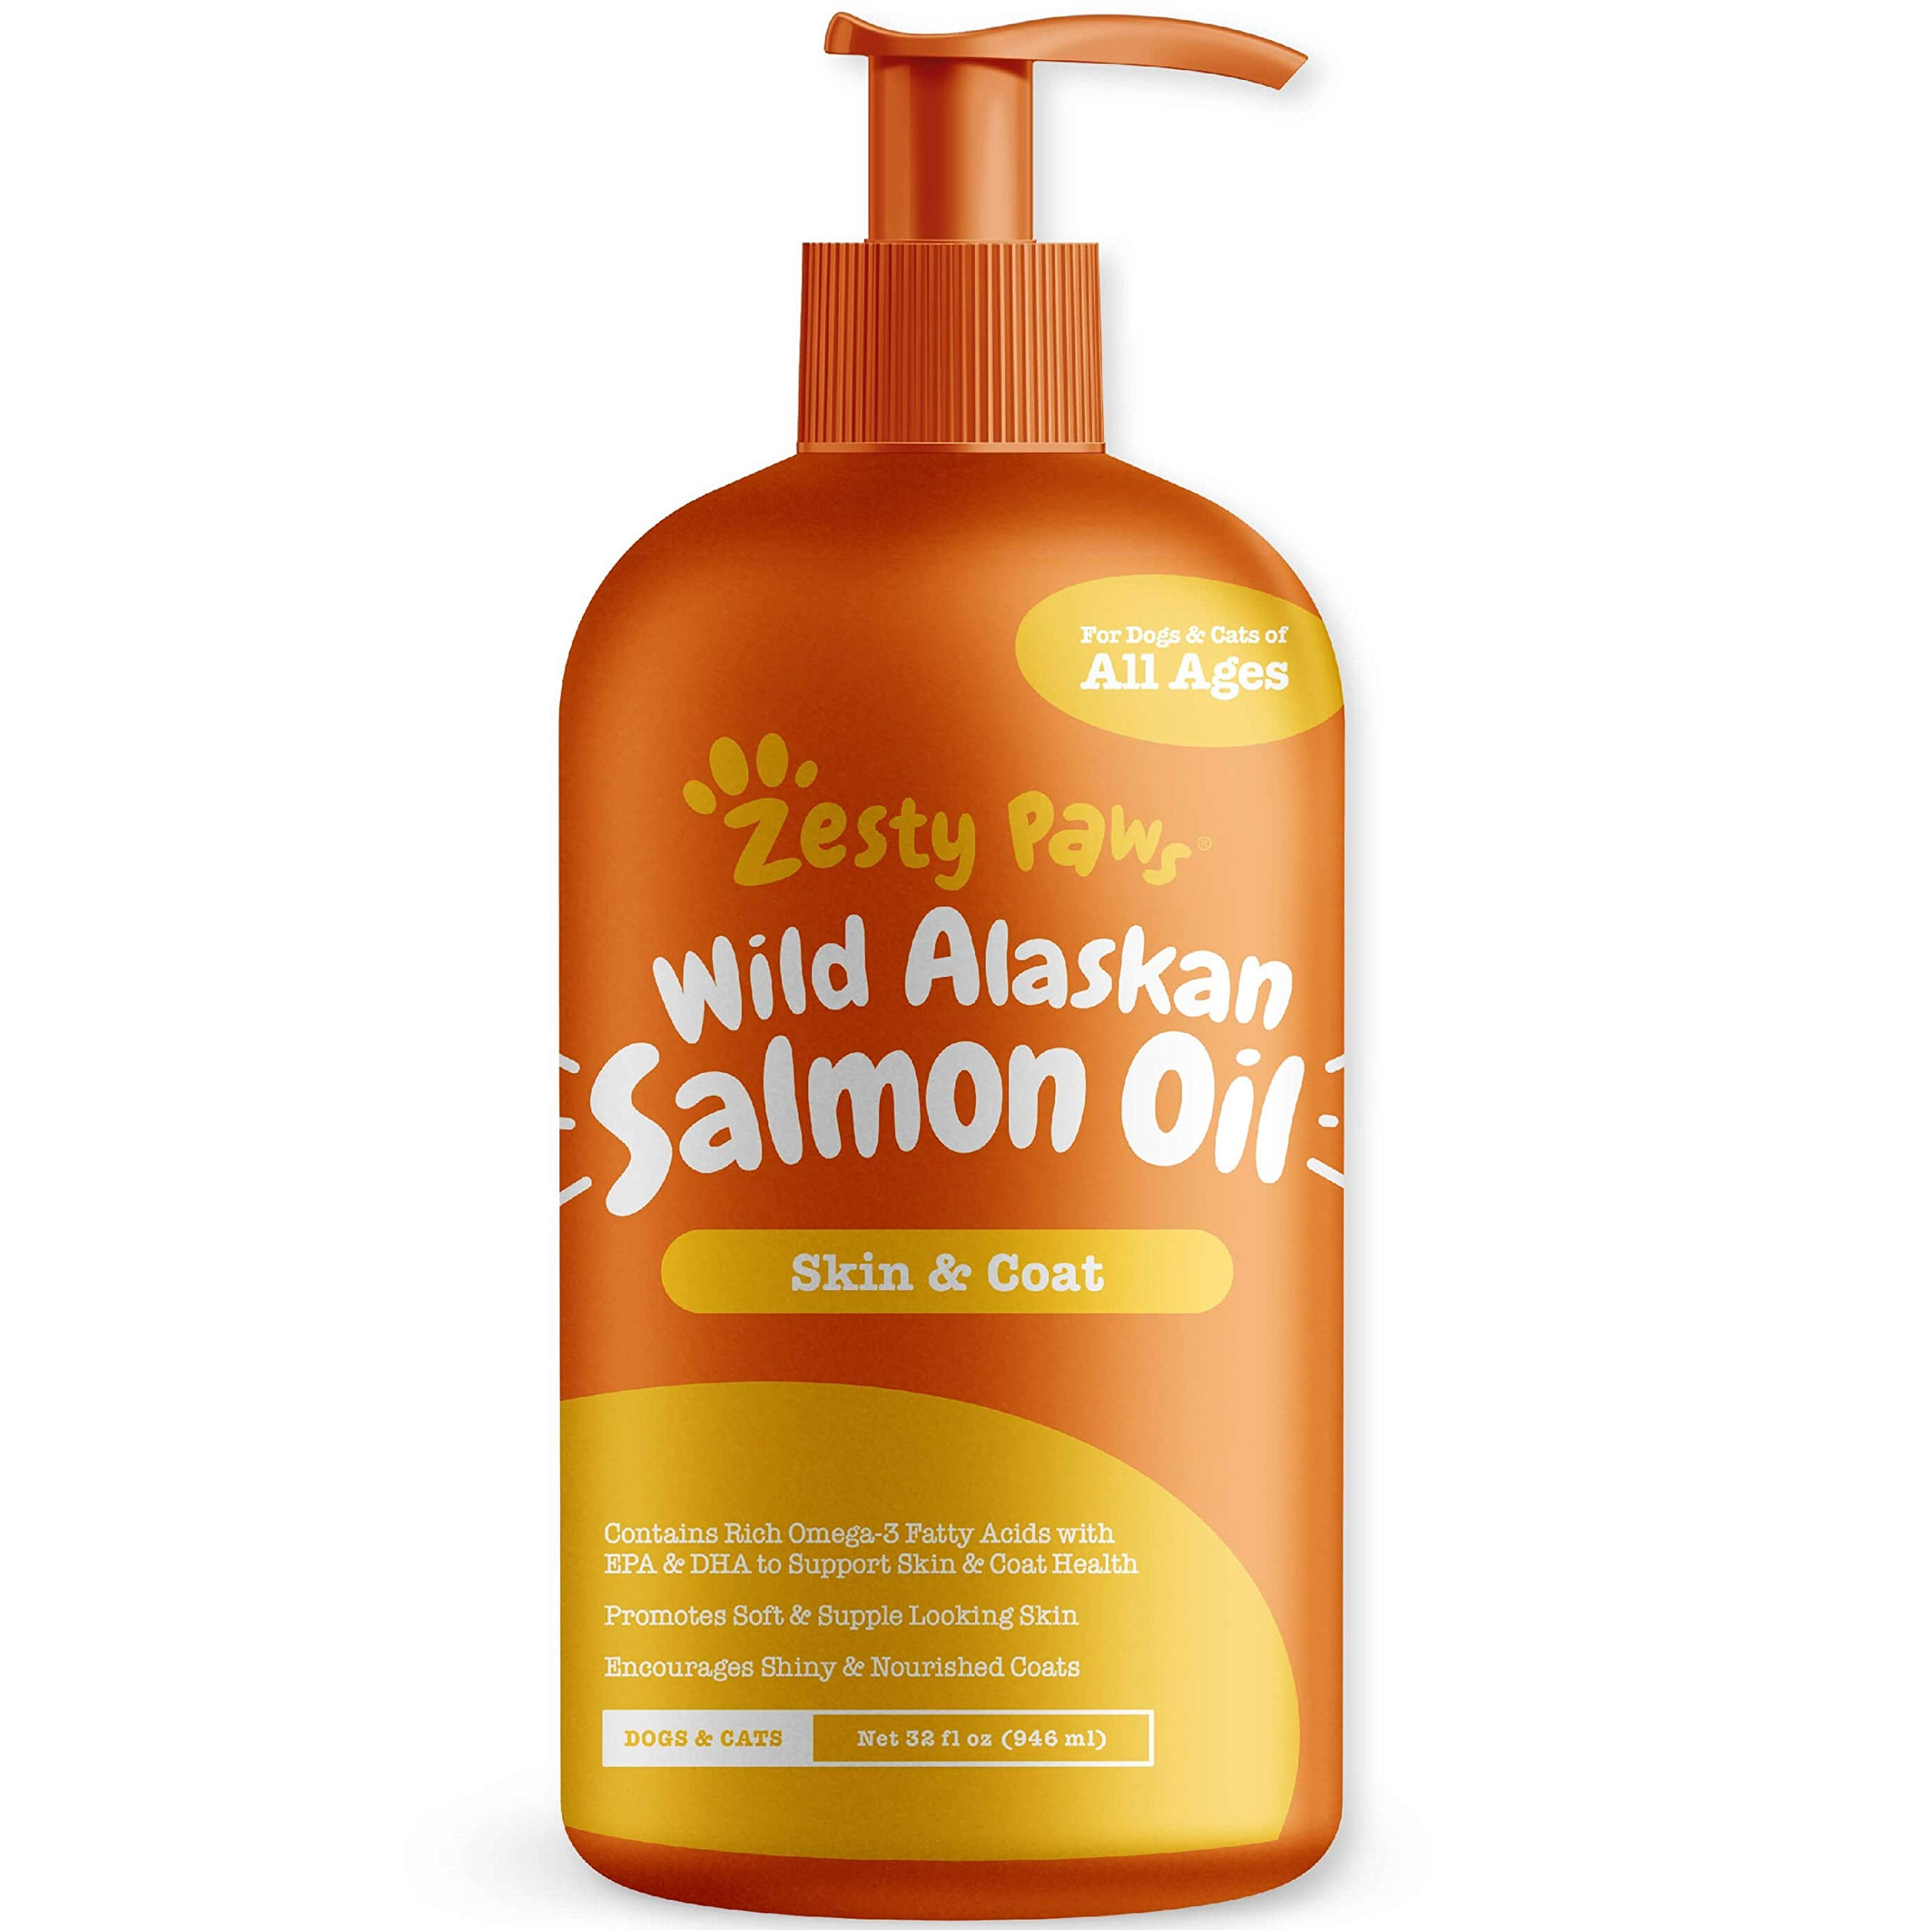 Pure Wild Alaskan Salmon Oil for Dogs & Cats - Supports Joint Function, Immune & Heart Health - Omega 3 Liquid Food Supplement for Pets - All Natural EPA + DHA Fatty Acids for Skin & Coat - 32 FL OZ by Zesty Paws